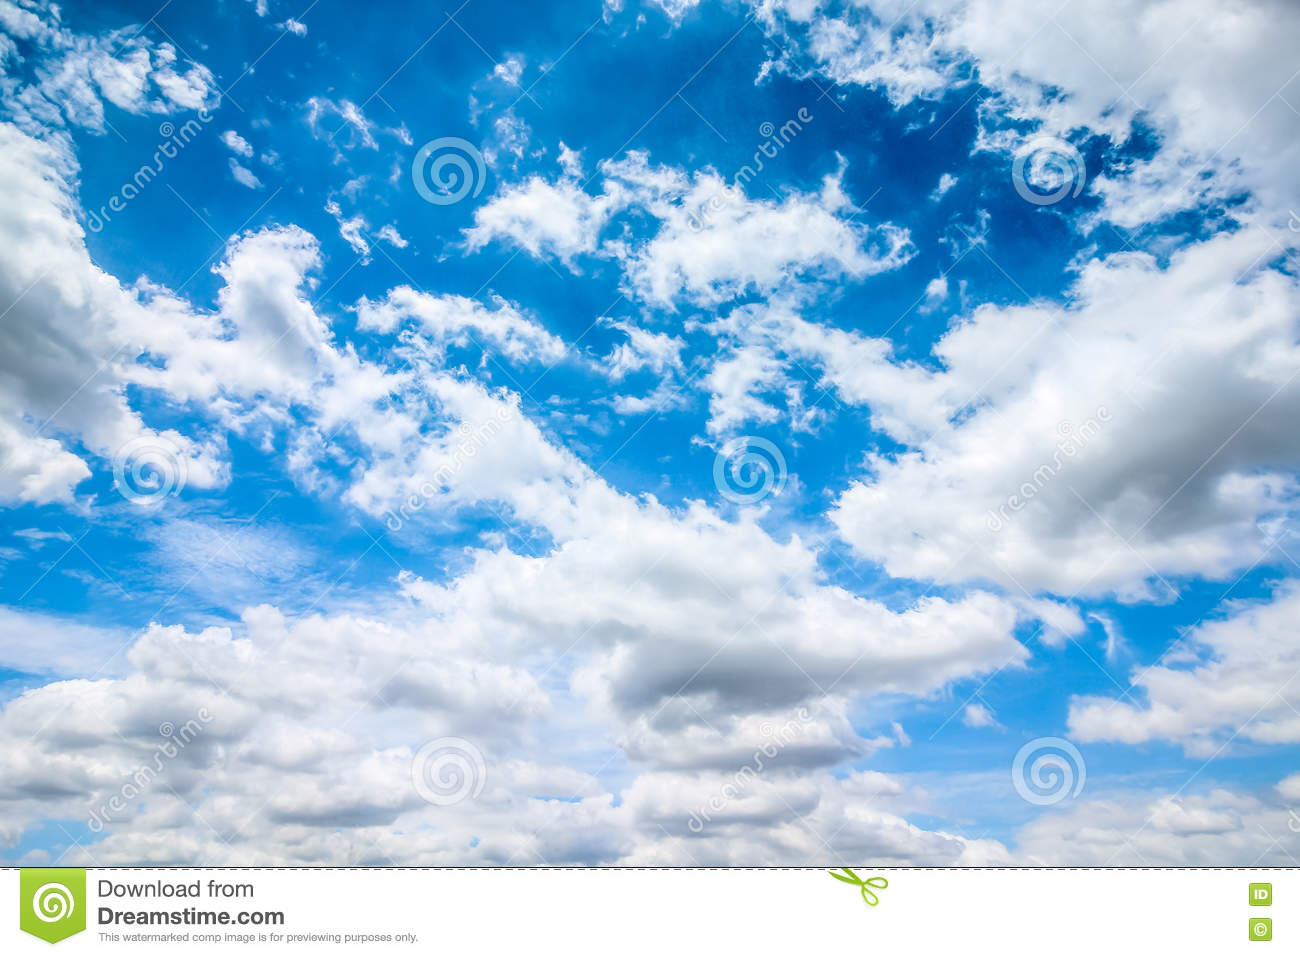 clear blue sky with cloudy as a background wallpaper, pastel sky